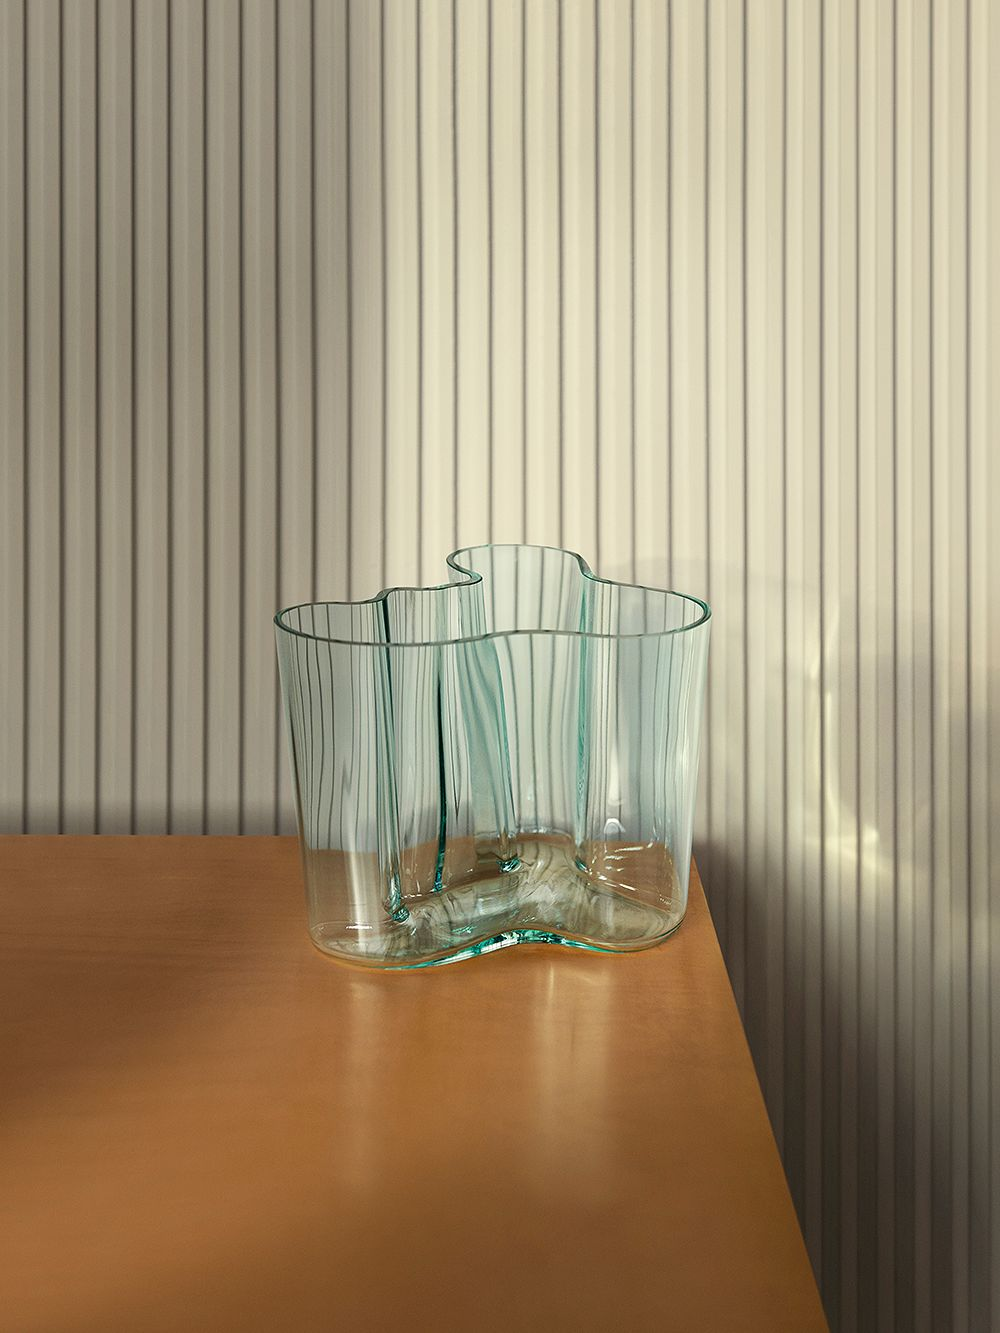 Recycled glass Aalto vase by Iittala